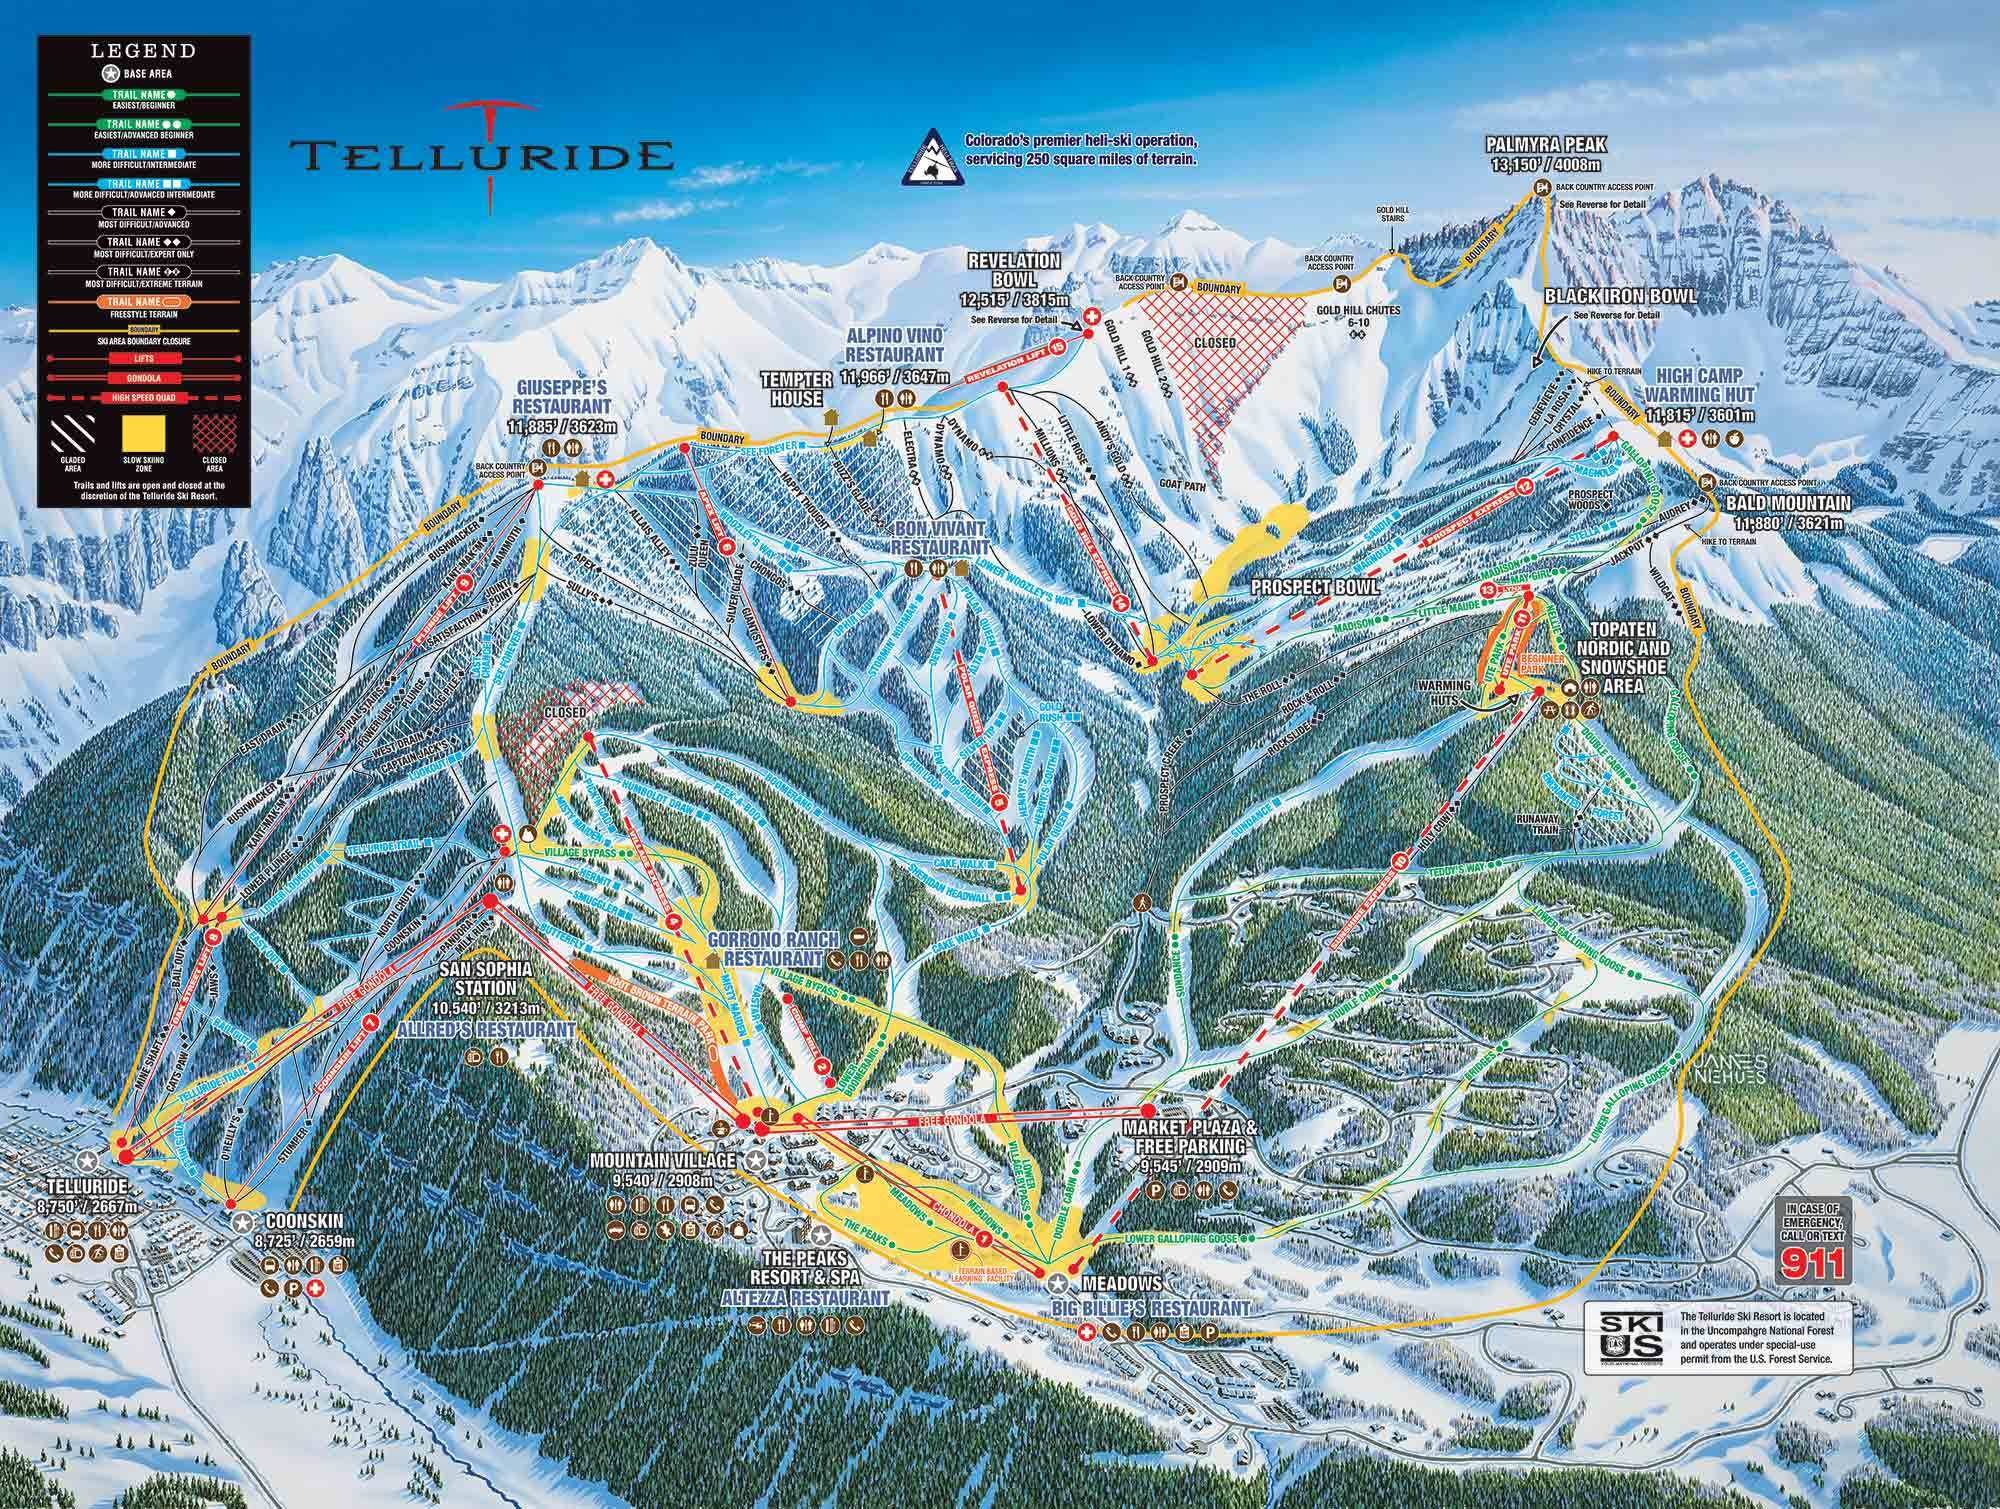 Telluride Colorado Map Telluride Trail Map | OnTheSnow Telluride Colorado Map